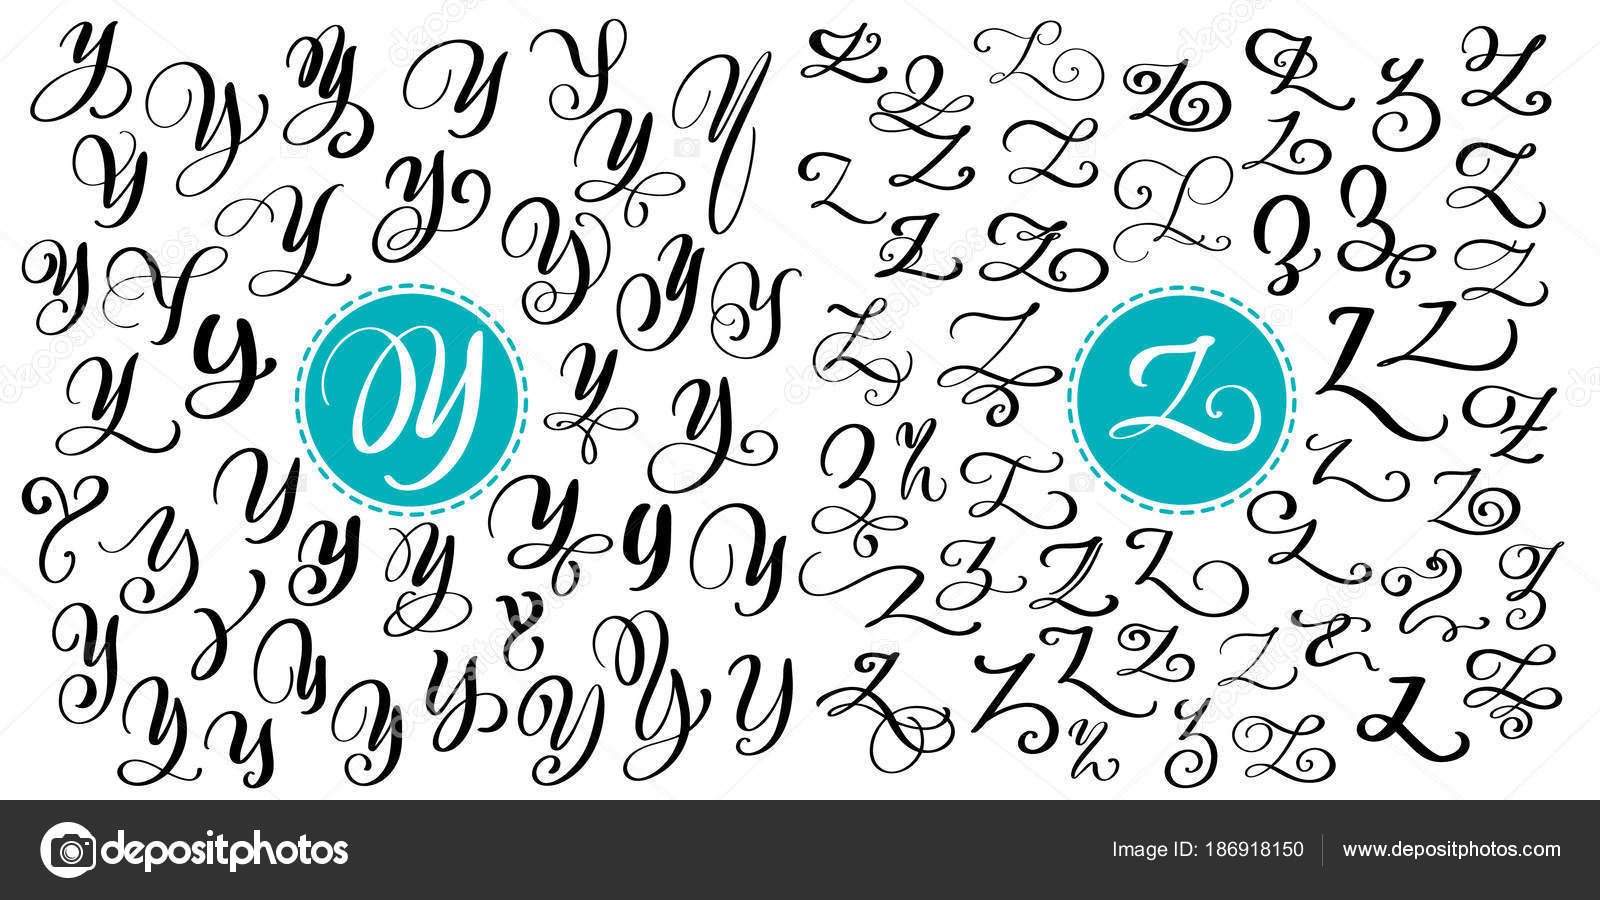 Hand Drawn Vector Calligraphy Letter Y Z Script Font Isolated Letters Written With